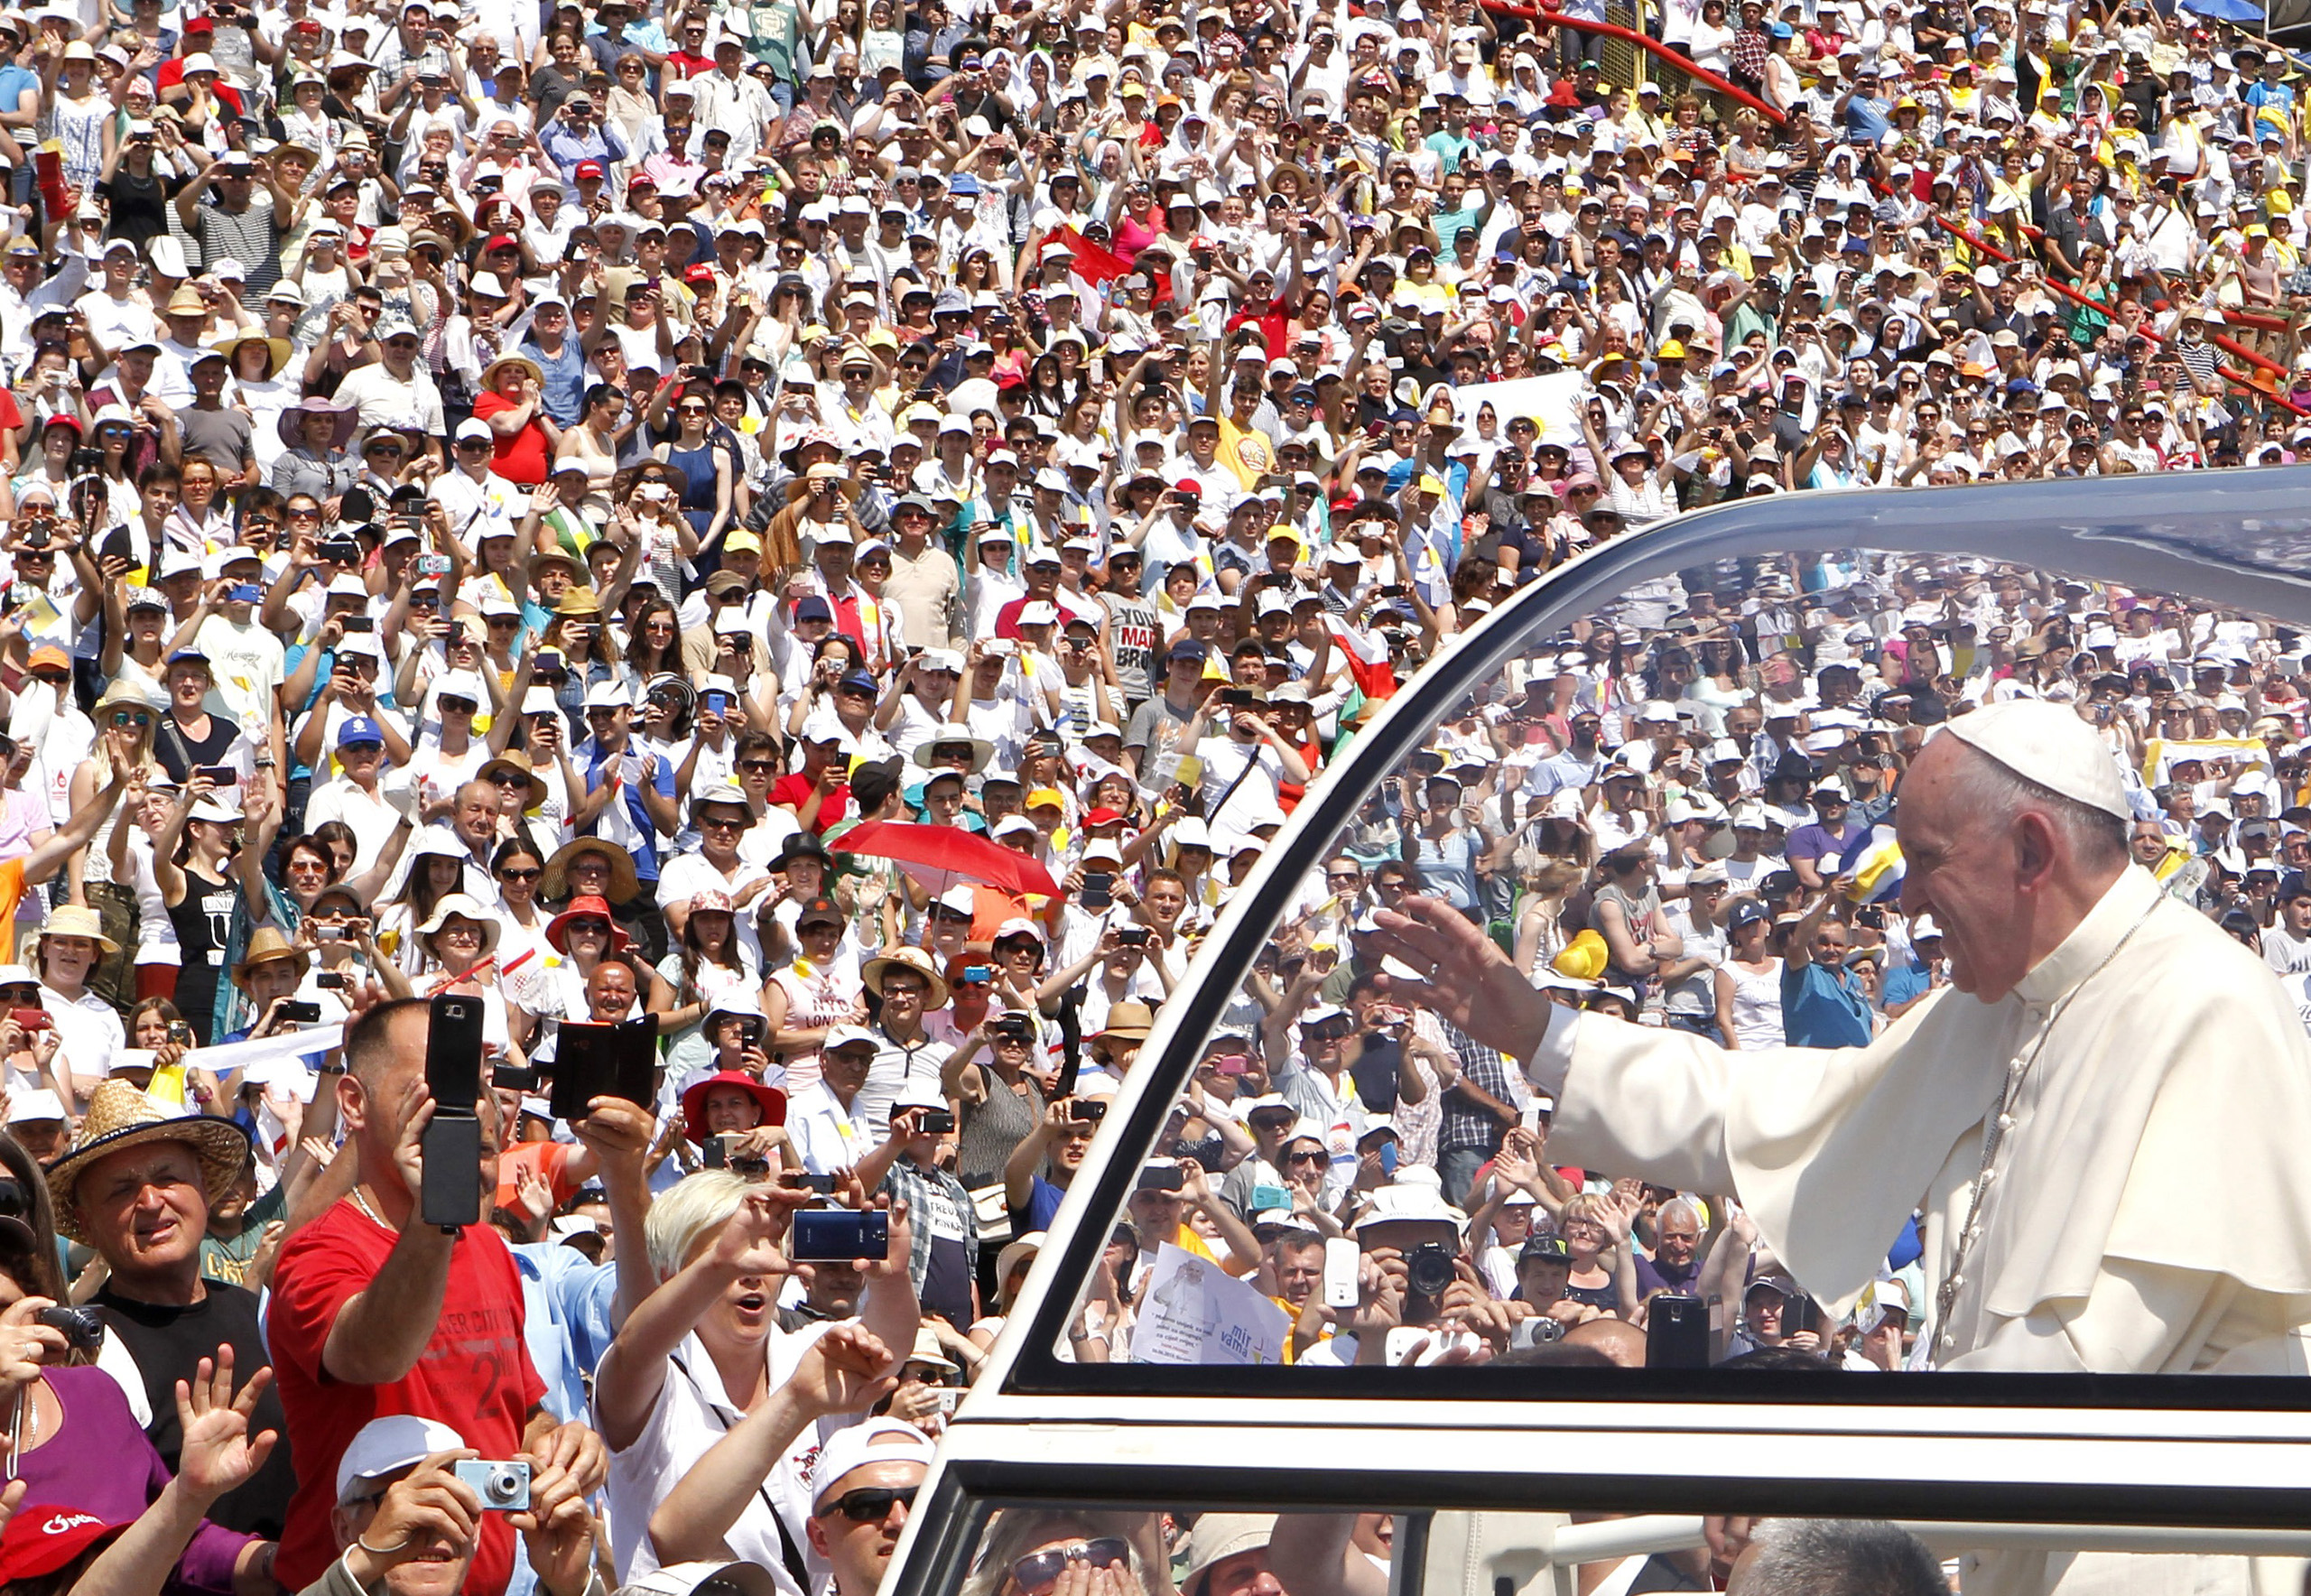 Pope Francis waves to the crowd as he arrives in Bosnia and Herzegovina for a Mass in 2015.